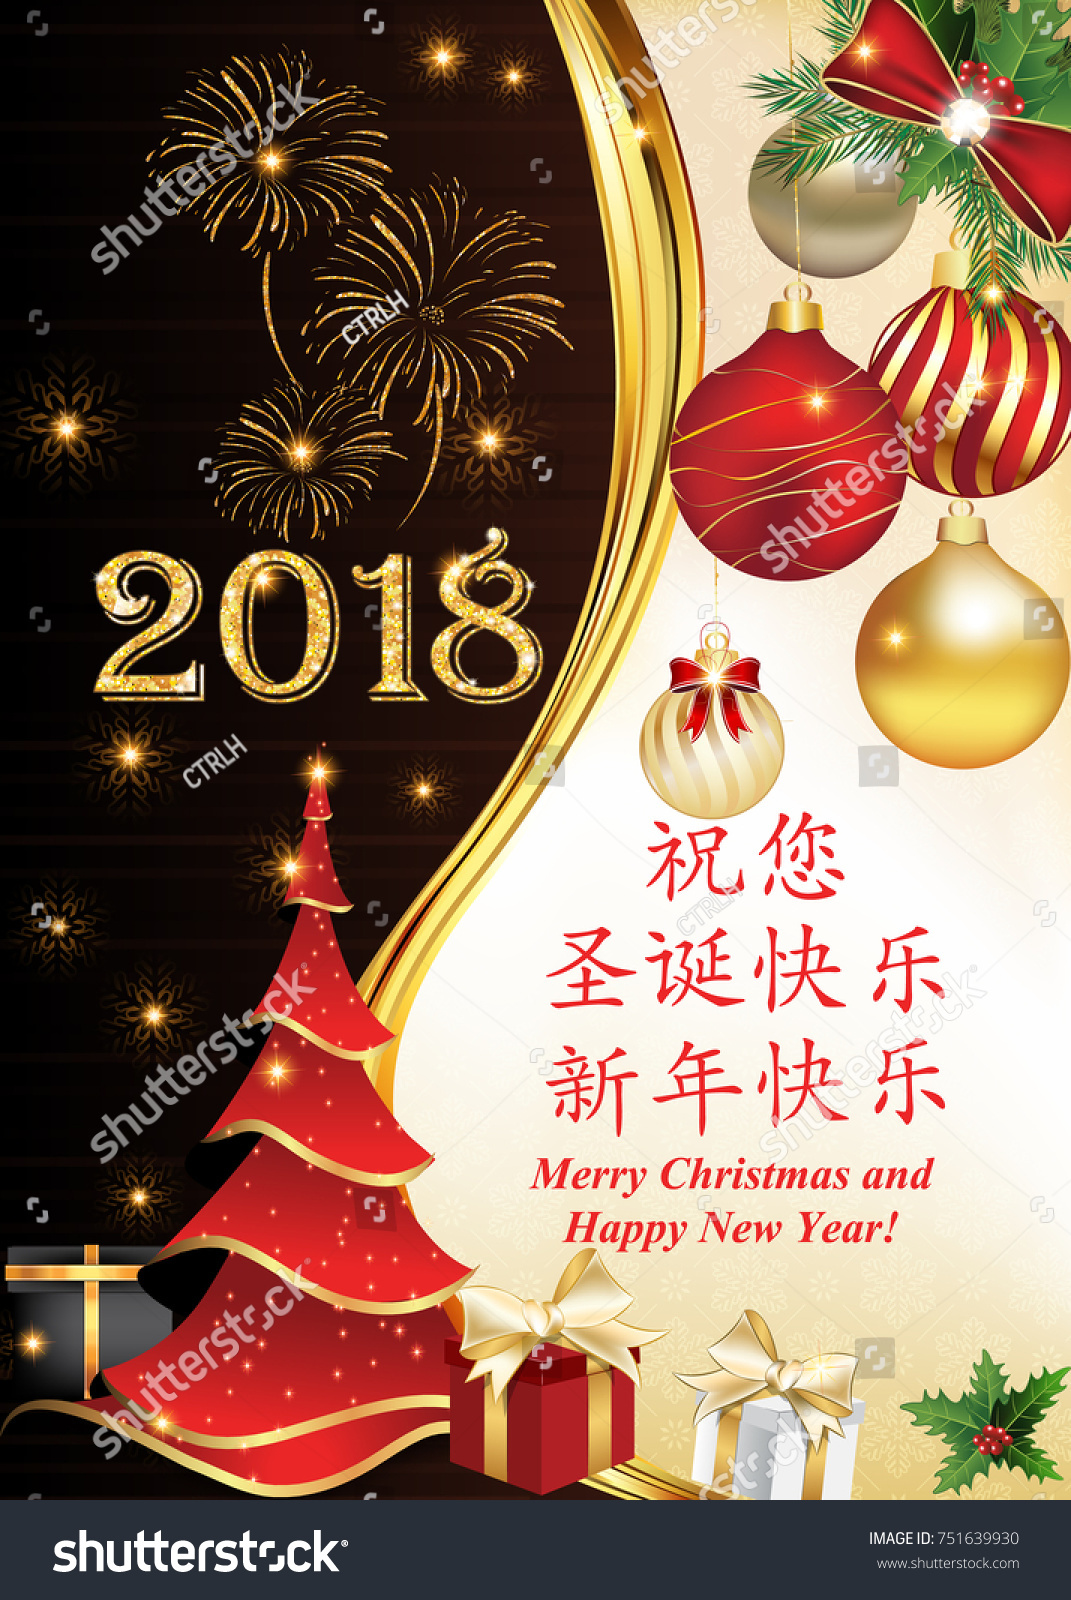 2018 winter holidays greeting card message stock illustration 2018 winter holidays greeting card with message in chinese and english ideograms translation merry kristyandbryce Gallery